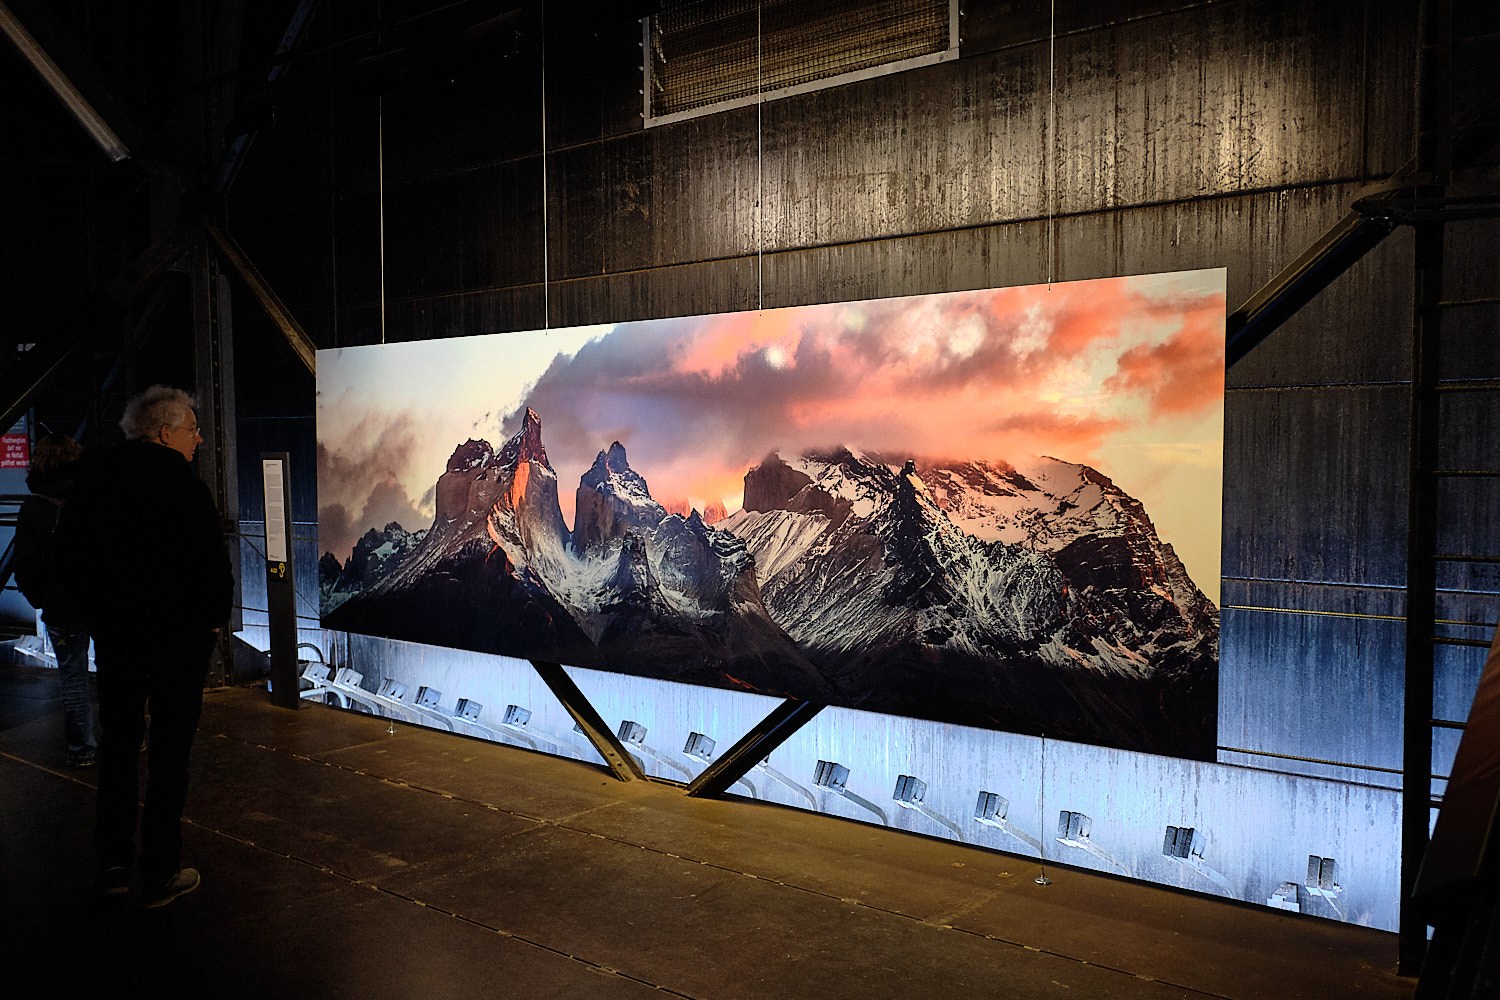 """Der Berg Ruft"" Temporary exhibition about mountains at the Gasometer, Oberhausen, Germany"